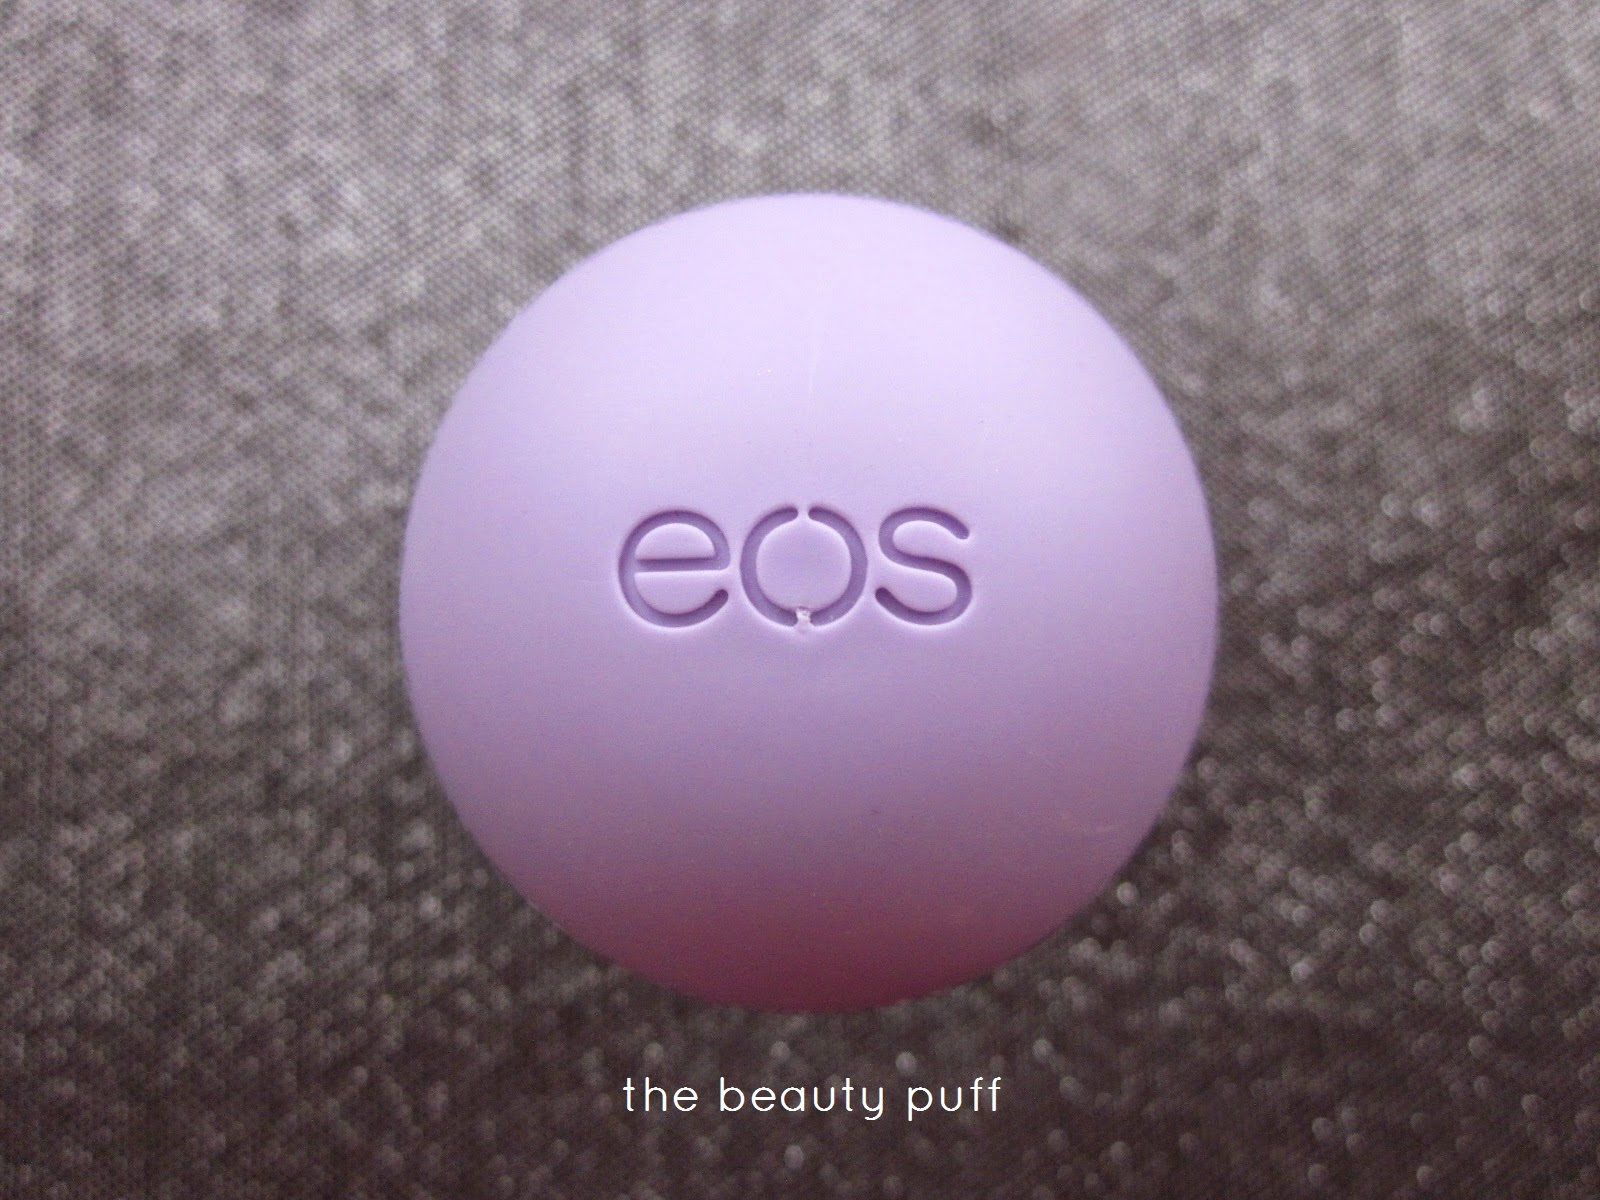 eos lip balm passion fruit - the beauty puff